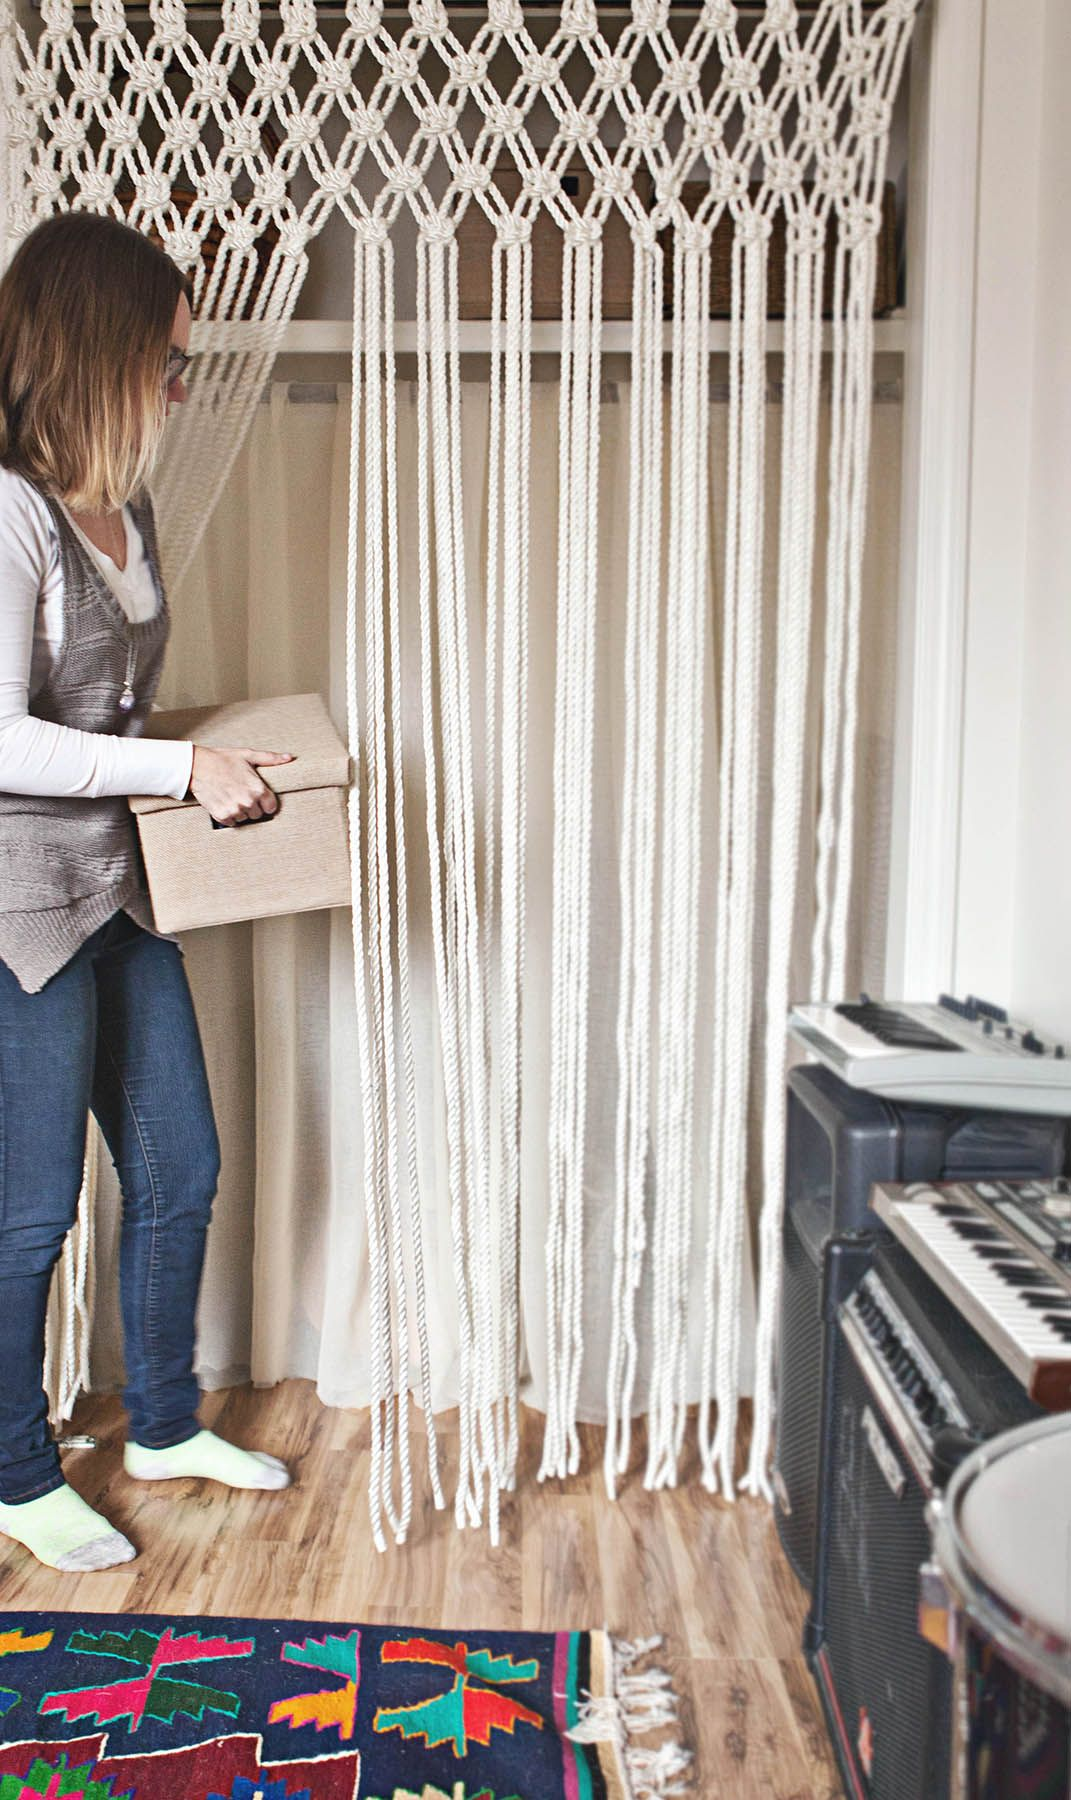 Diy Rope Macrame Curtain Diy Ornament And Home Decor Pinterest